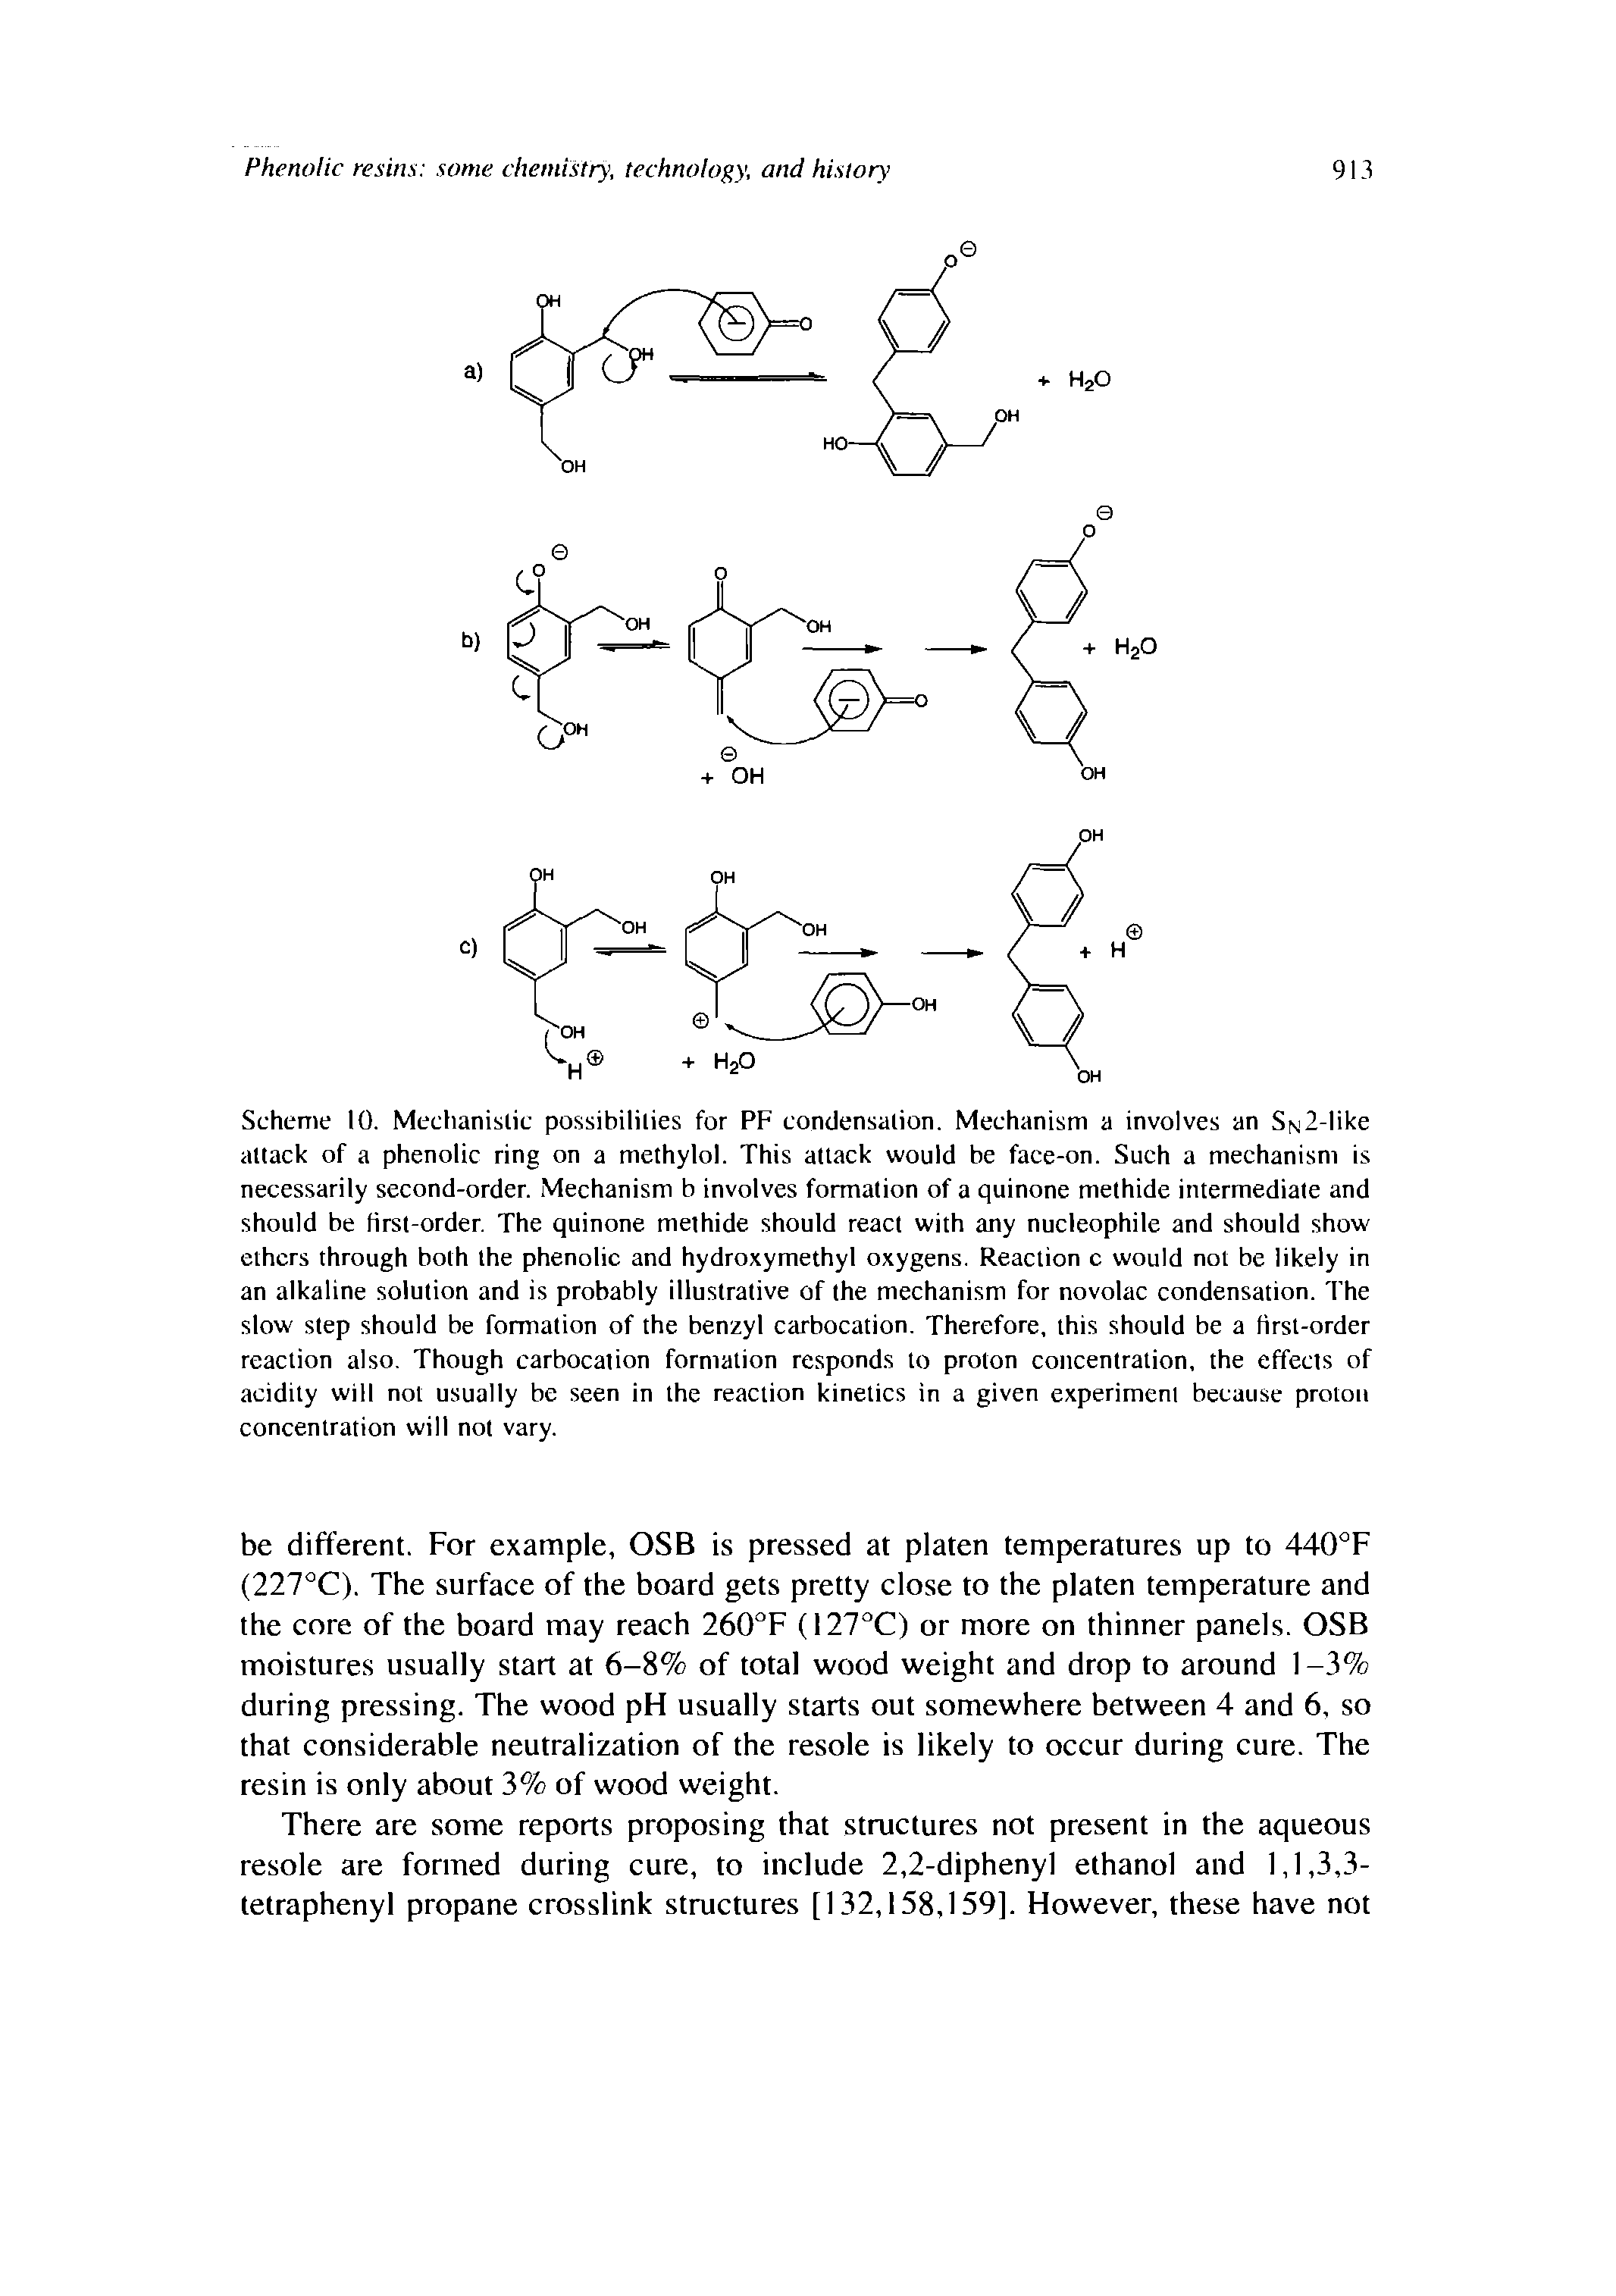 "Scheme 10. Mechanislic possibililies for PF condensalion. Mechanism a involves an SN2-like attack of a <a href=""/info/phenol_ring"">phenolic ring</a> on a methylol. This attack would be face-on. Such a mechanism is necessarily <a href=""/info/second_order"">second-order</a>. Mechanism b involves formation of a <a href=""/info/quinone_methides_intermediate"">quinone methide intermediate</a> and should be Hrst-order. The <a href=""/info/aza_quinone_methides"">quinone methide</a> should <a href=""/info/react_with"">react with</a> any nucleophile and should show ethers through both the phenolic and hydroxymethyl oxygens. Reaction c would not be likely in an <a href=""/info/alkaline_solution"">alkaline solution</a> and is probably illustrative of the mechanism for novolac condensation. The <a href=""/info/slow_step"">slow step</a> should be formation of the <a href=""/info/carbocations_benzylic"">benzyl carbocation</a>. Therefore, this should be a <a href=""/info/first_order_reactions"">first-order reaction</a> also. Though <a href=""/info/carbocations_formation"">carbocation formation</a> responds to <a href=""/info/proton_concentration_and"">proton concentration</a>, the effects of acidity will not usually be seen in the <a href=""/info/kinetics_of_reactions"">reaction kinetics</a> in a given experiment because <a href=""/info/proton_concentration_and"">proton concentration</a> will not vary."